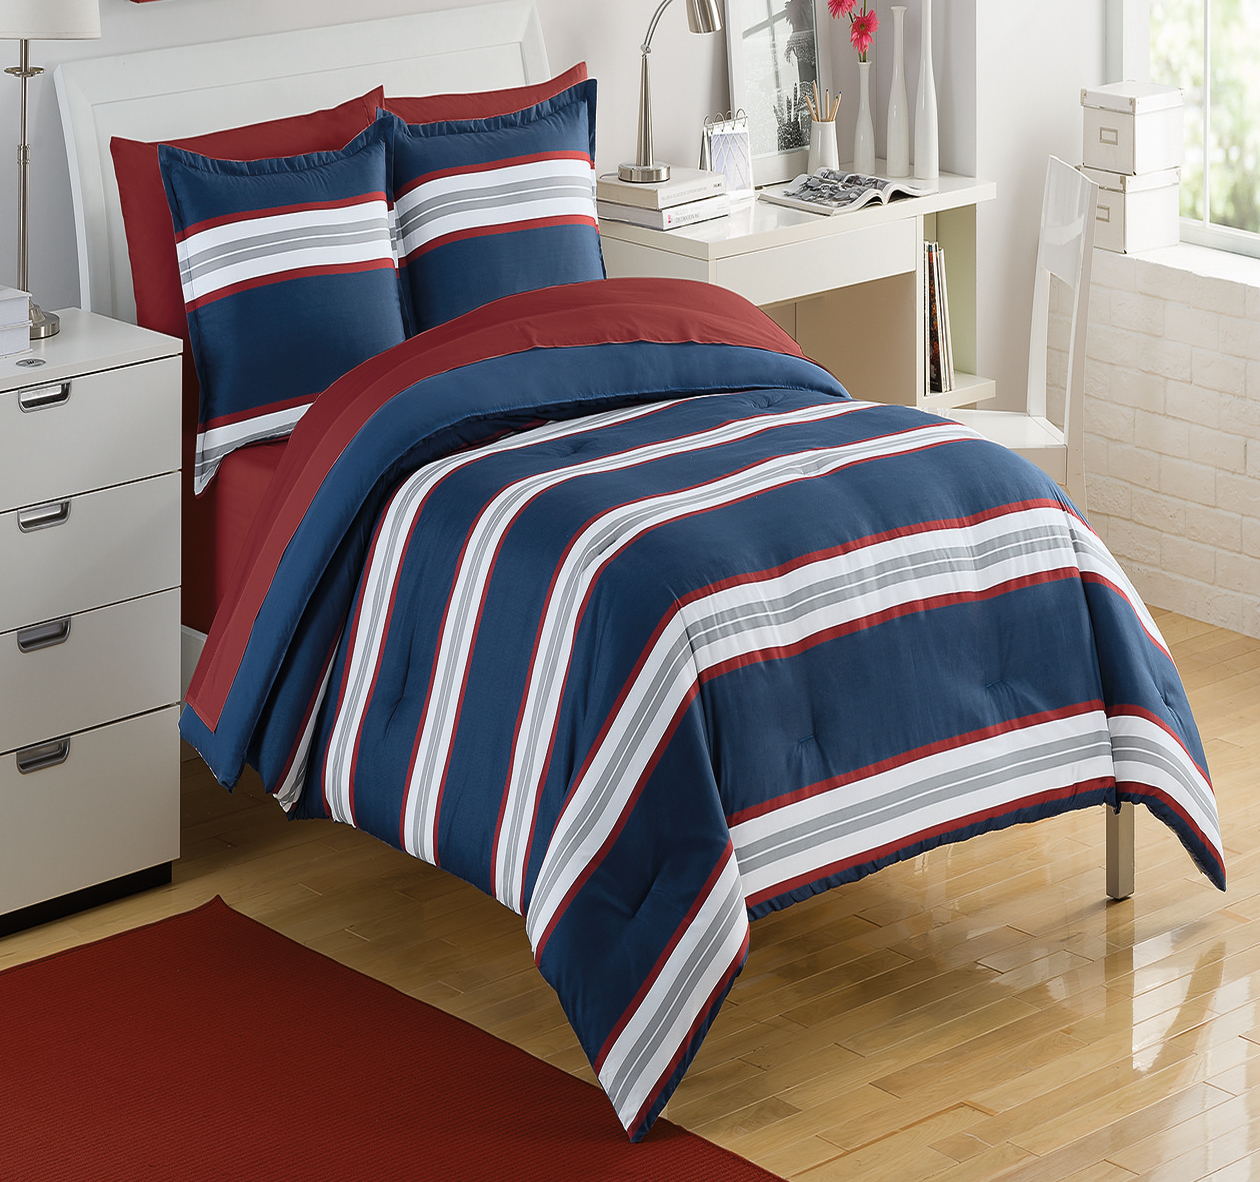 Rugby Stripe Navy Red By Izod Bedding Beddingsuperstore Com